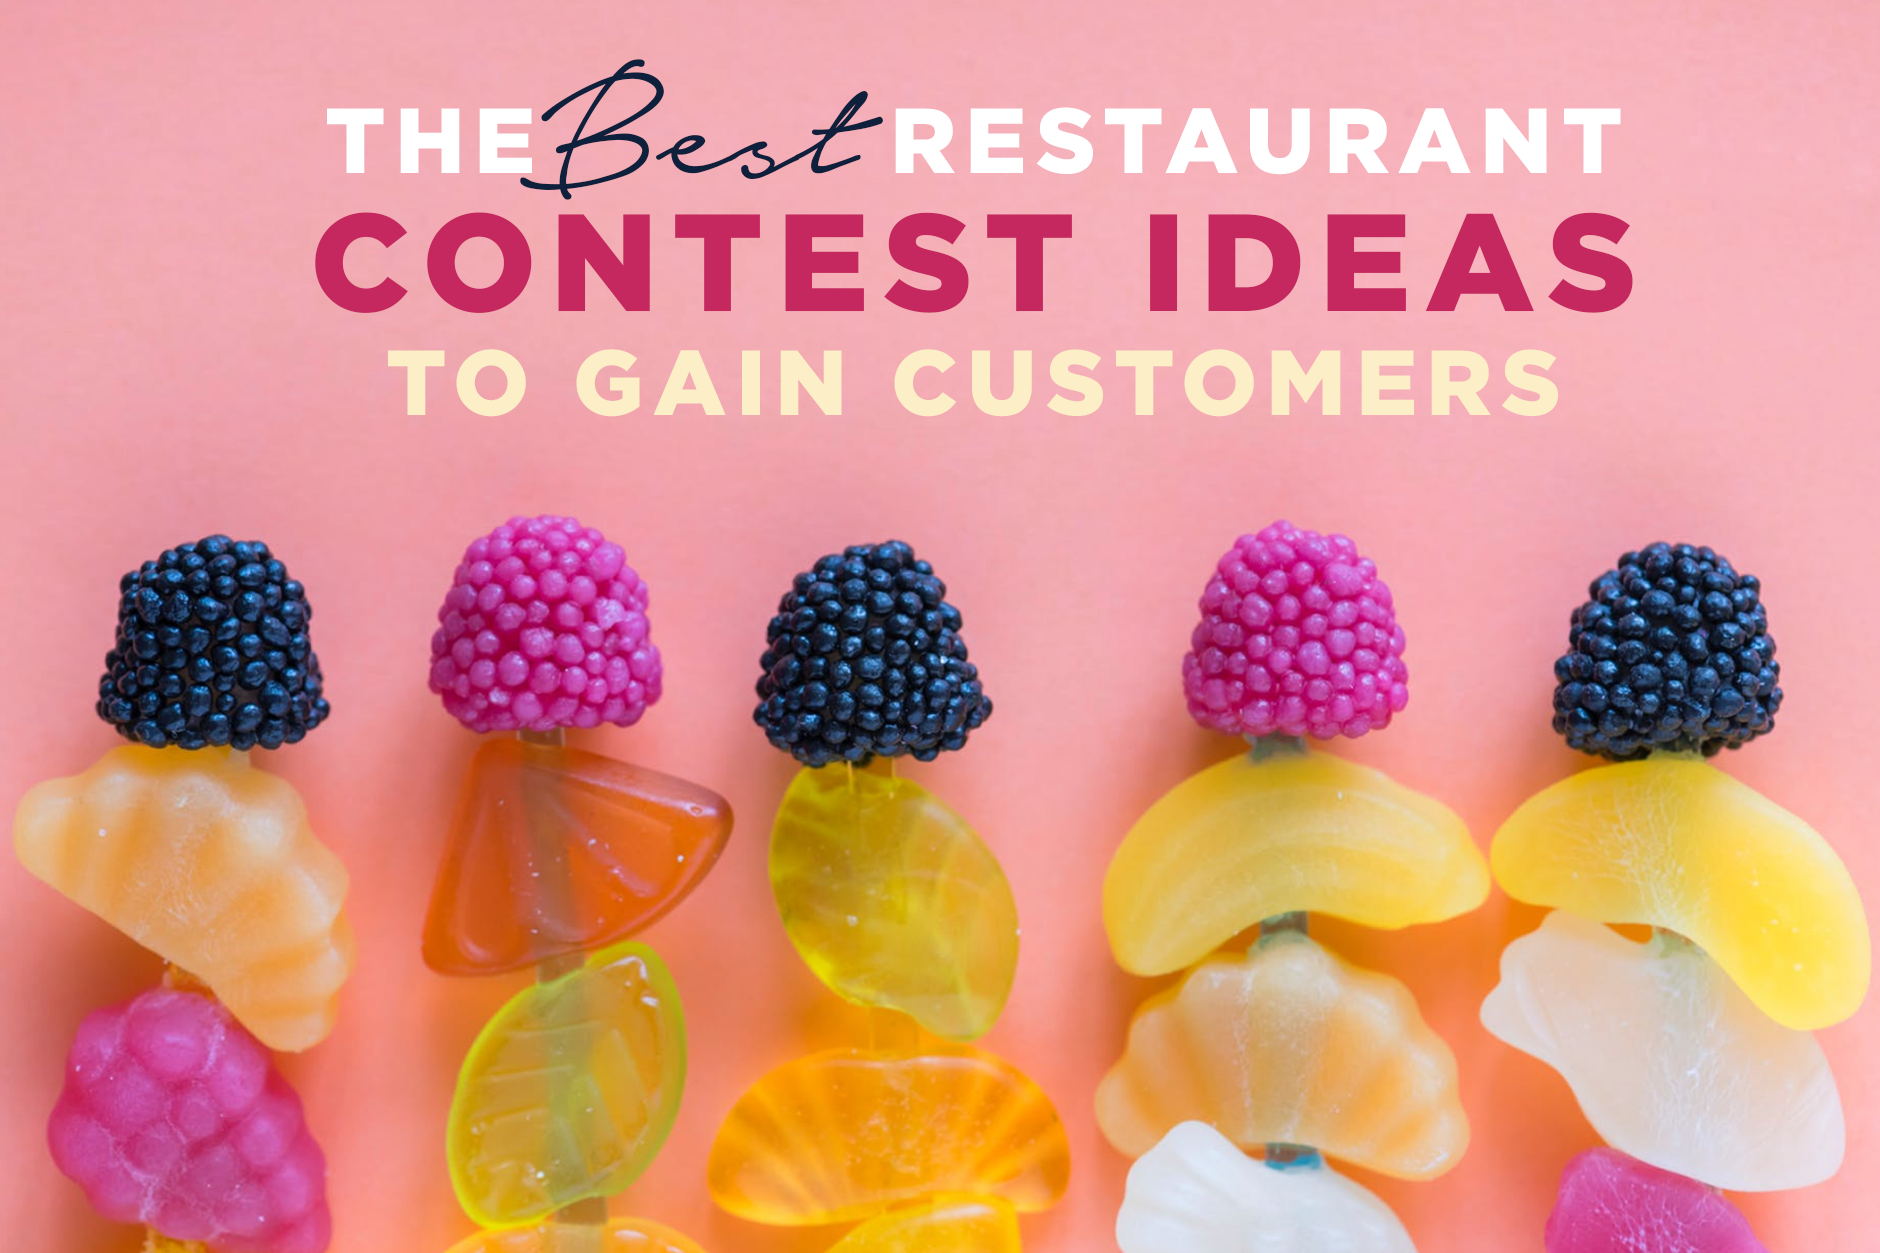 The Best Restaurant Contest Ideas to Gain Customers | NetWaiter